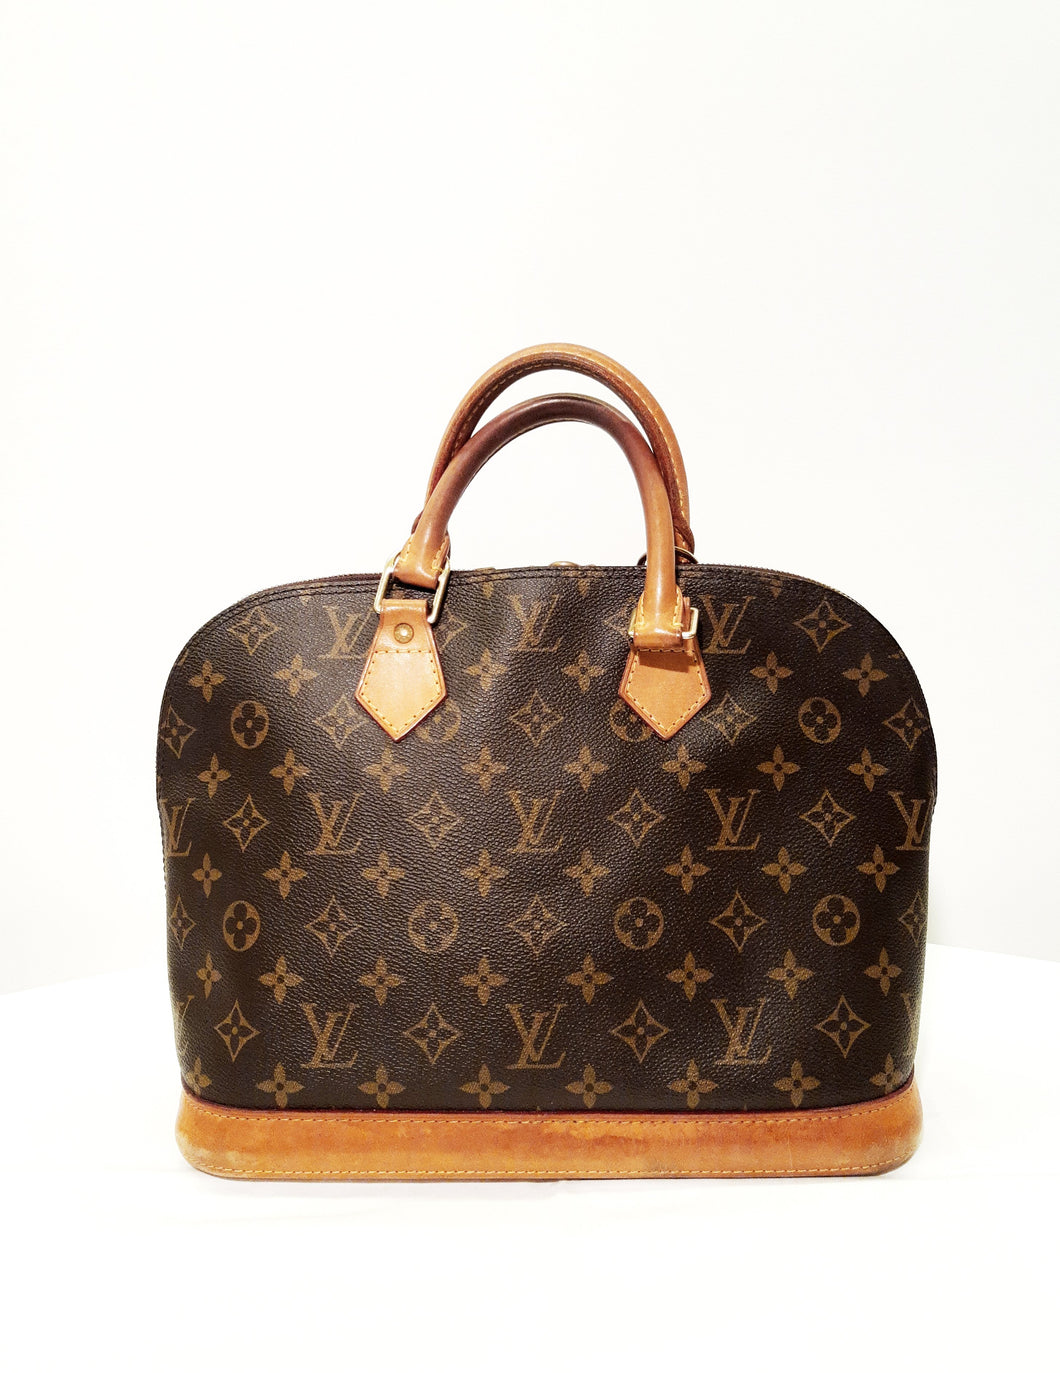 Borsa Louis Vuitton modello Alma - Montevago Luxury Bags